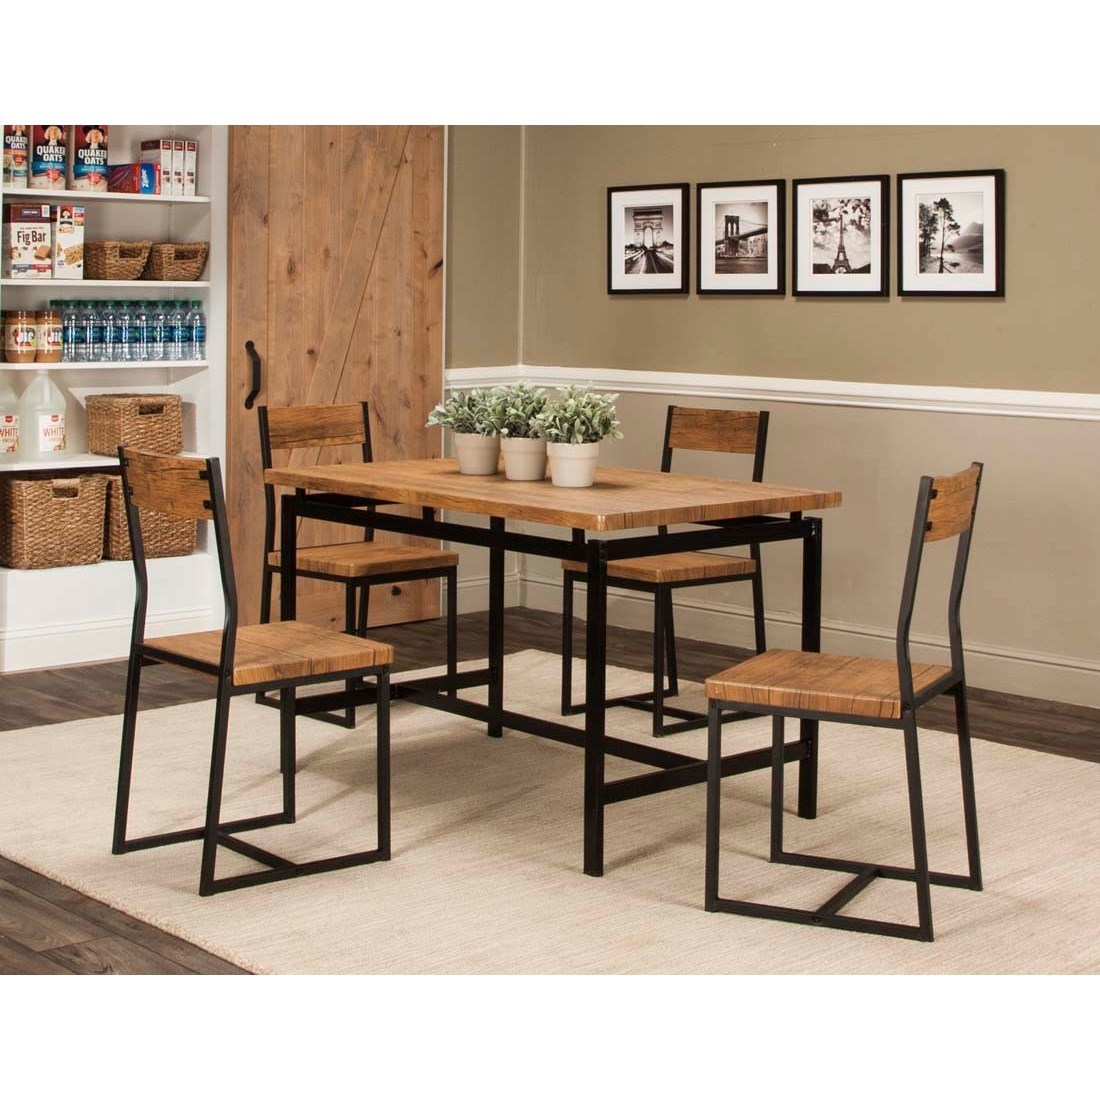 Adler 5-Piece Table and Chair Set by Cramco, Inc at Value City Furniture